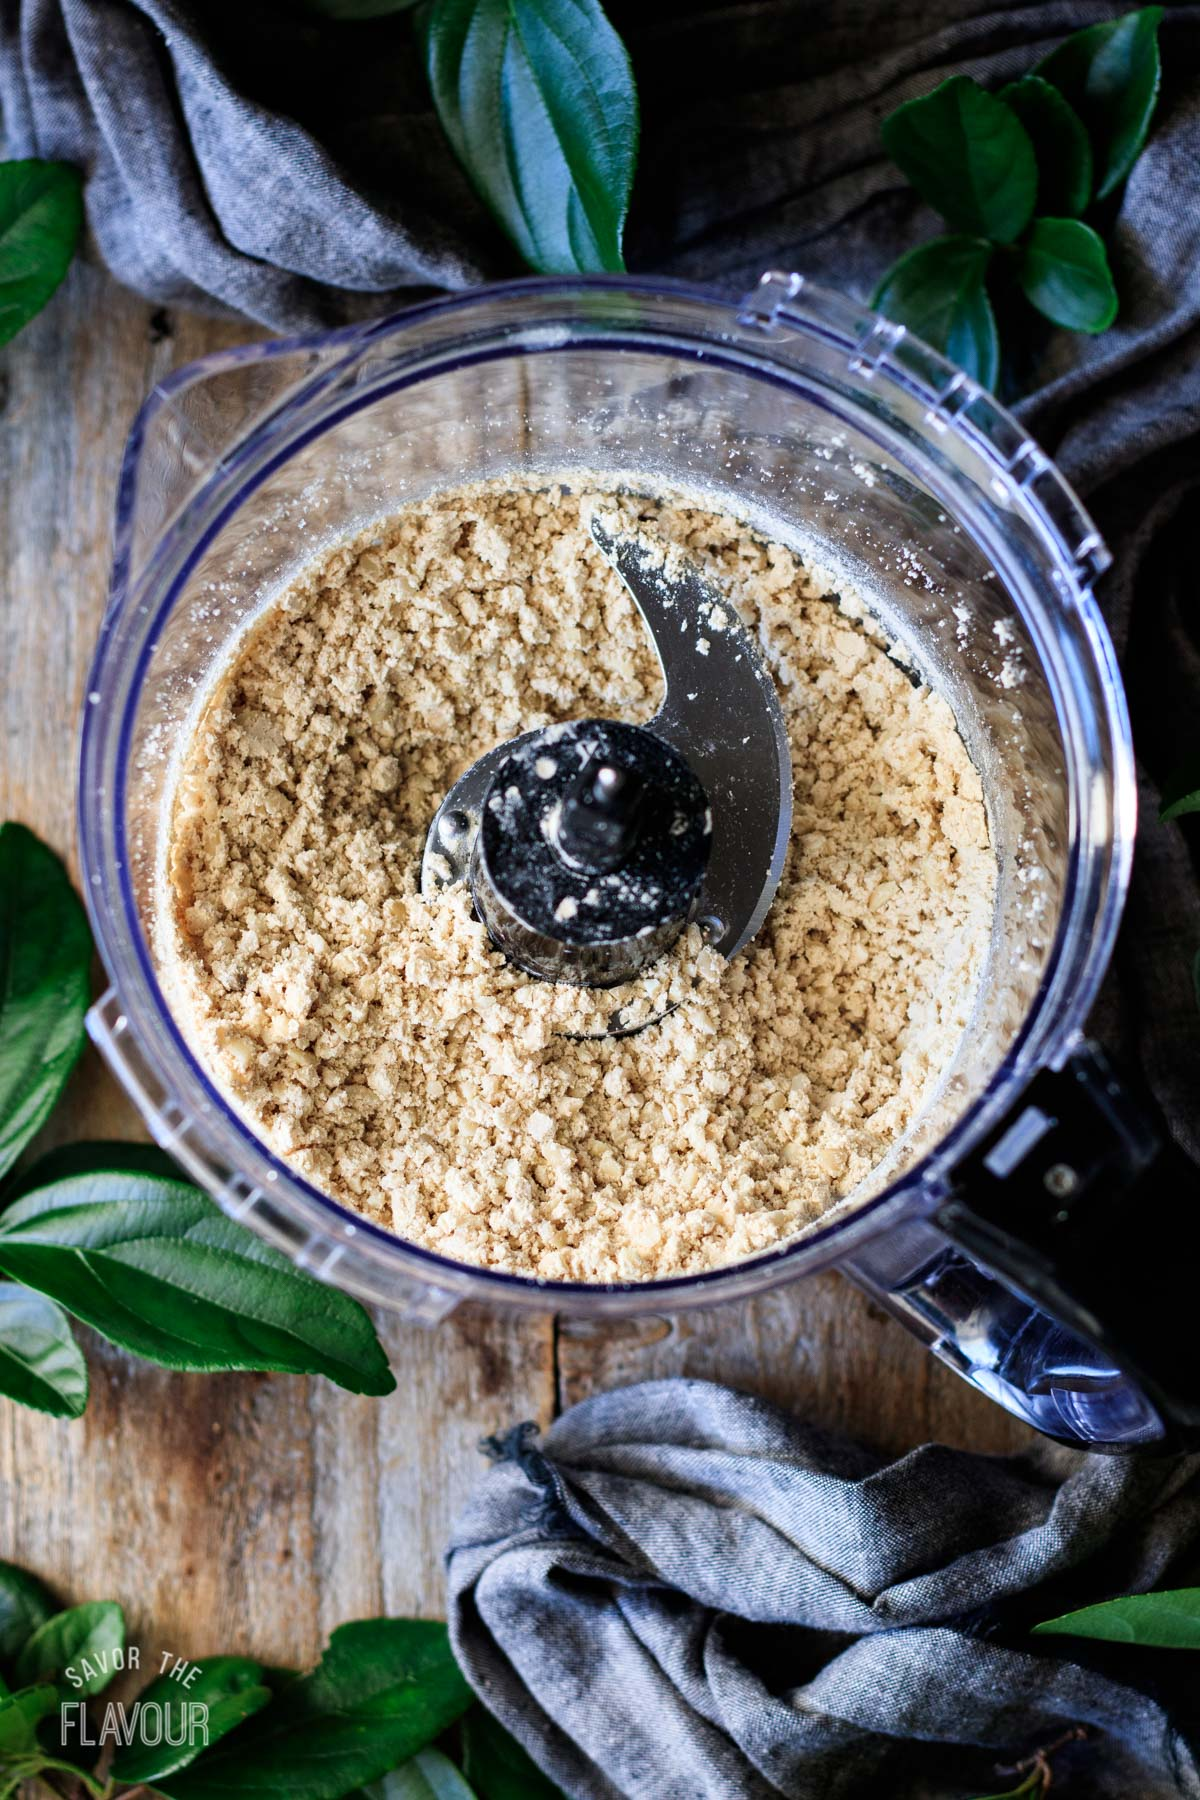 chopped almonds and protein powder in a food processor